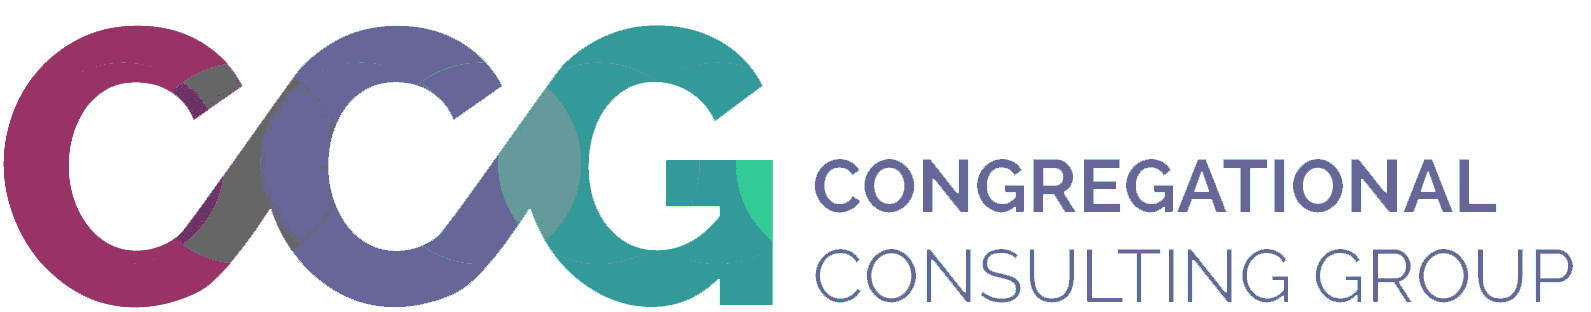 Congregational Consulting Group logo